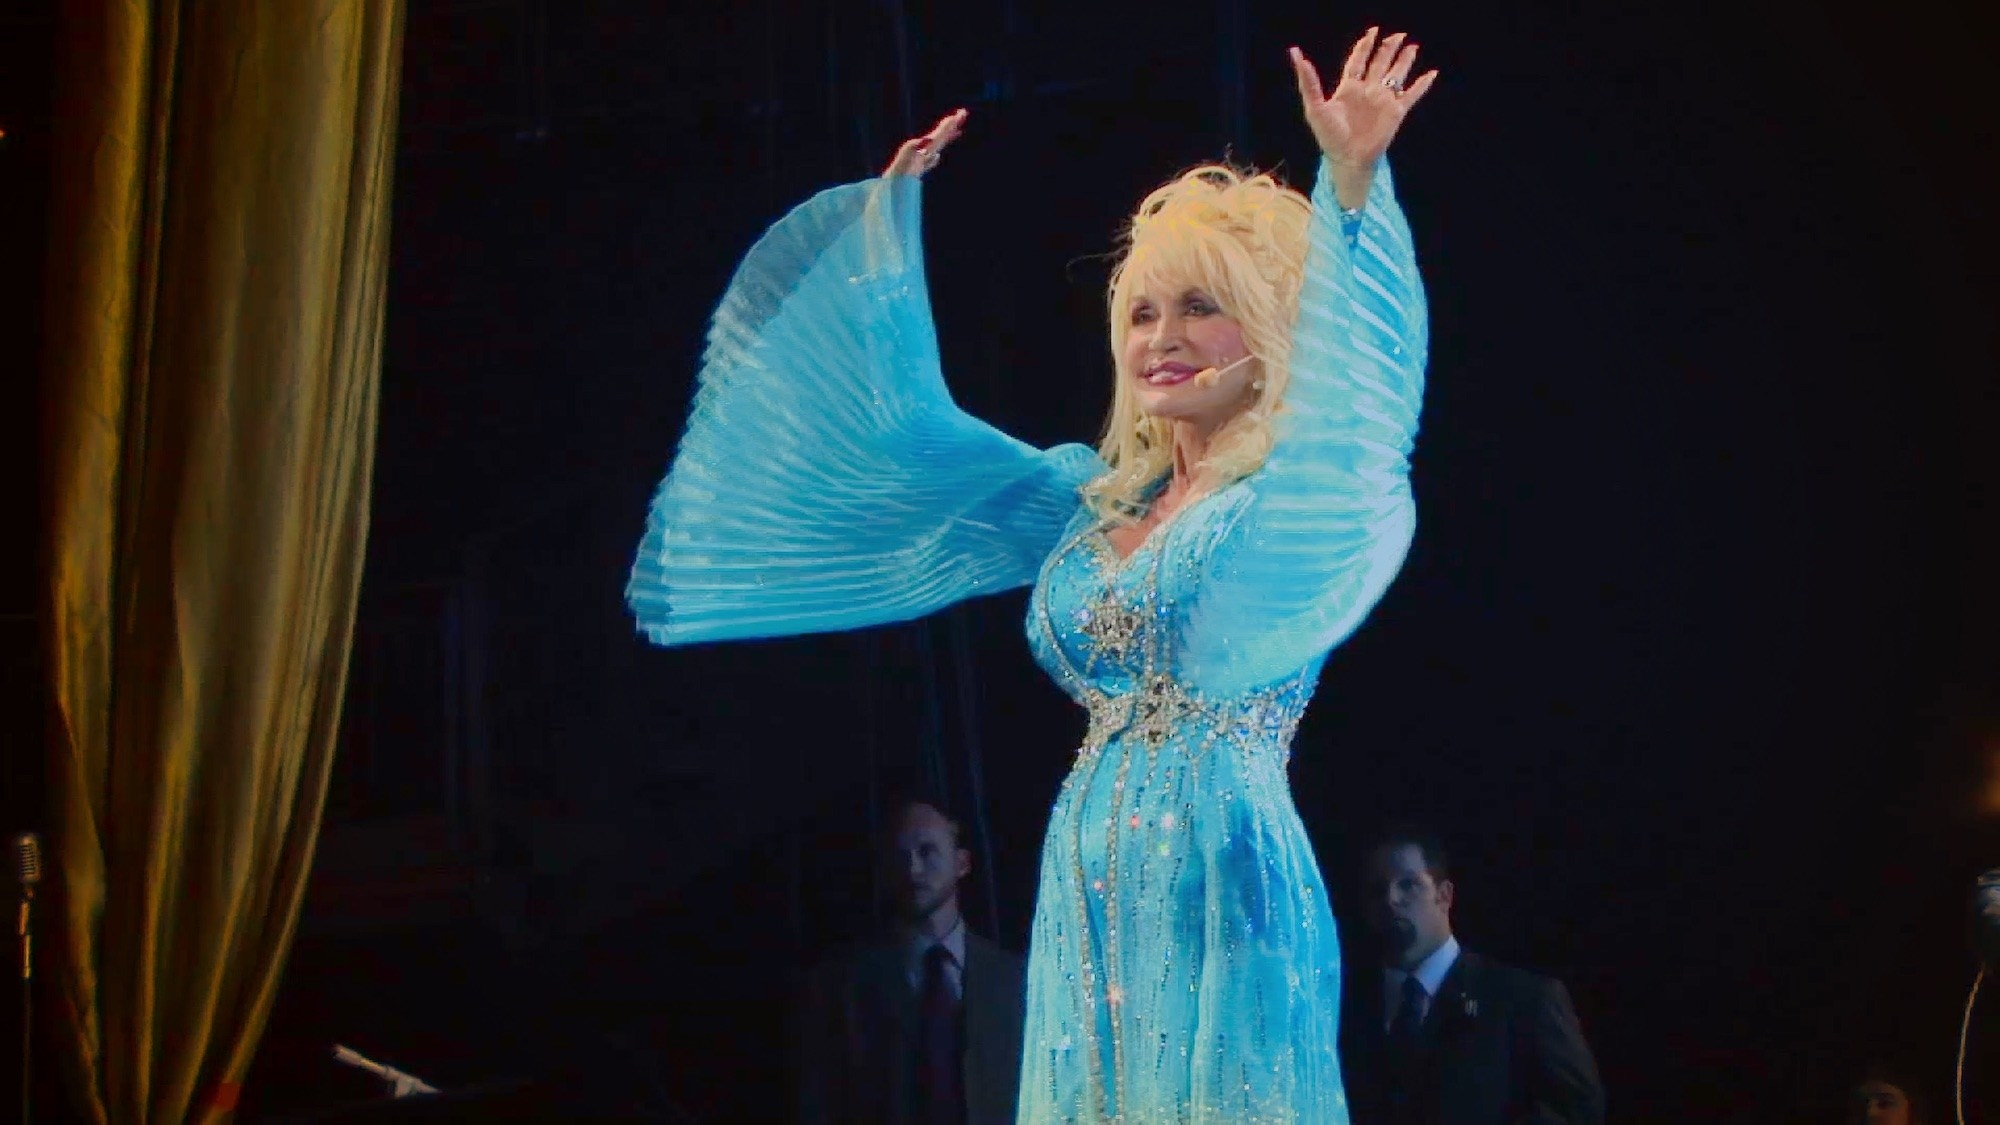 Dolly performing on stage